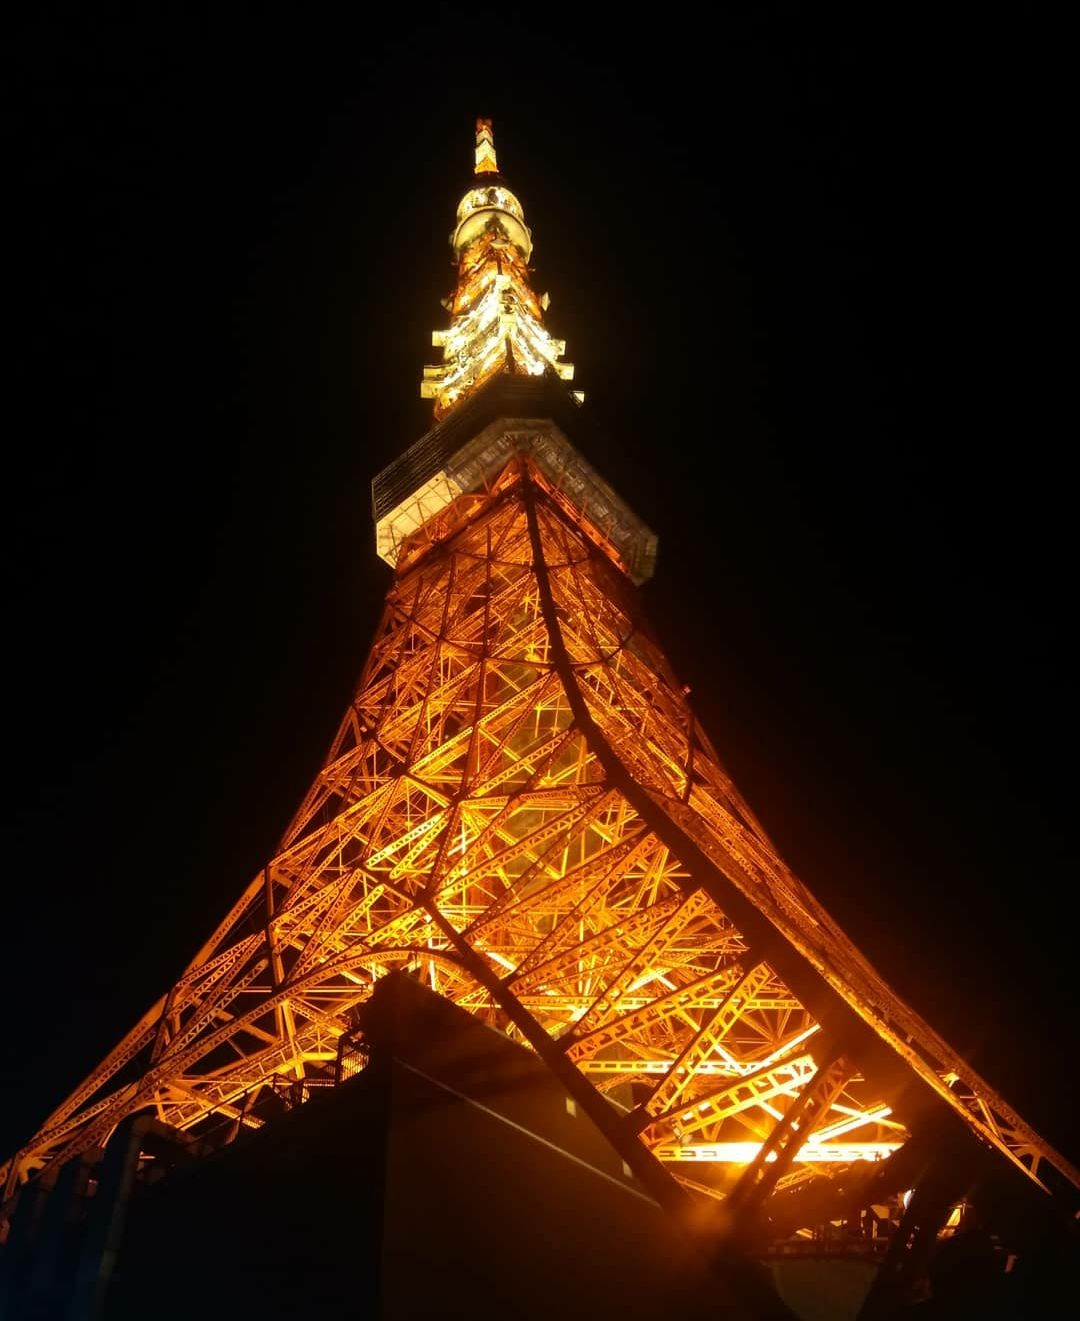 Photo of Tokyo Tower By Ghumantroo